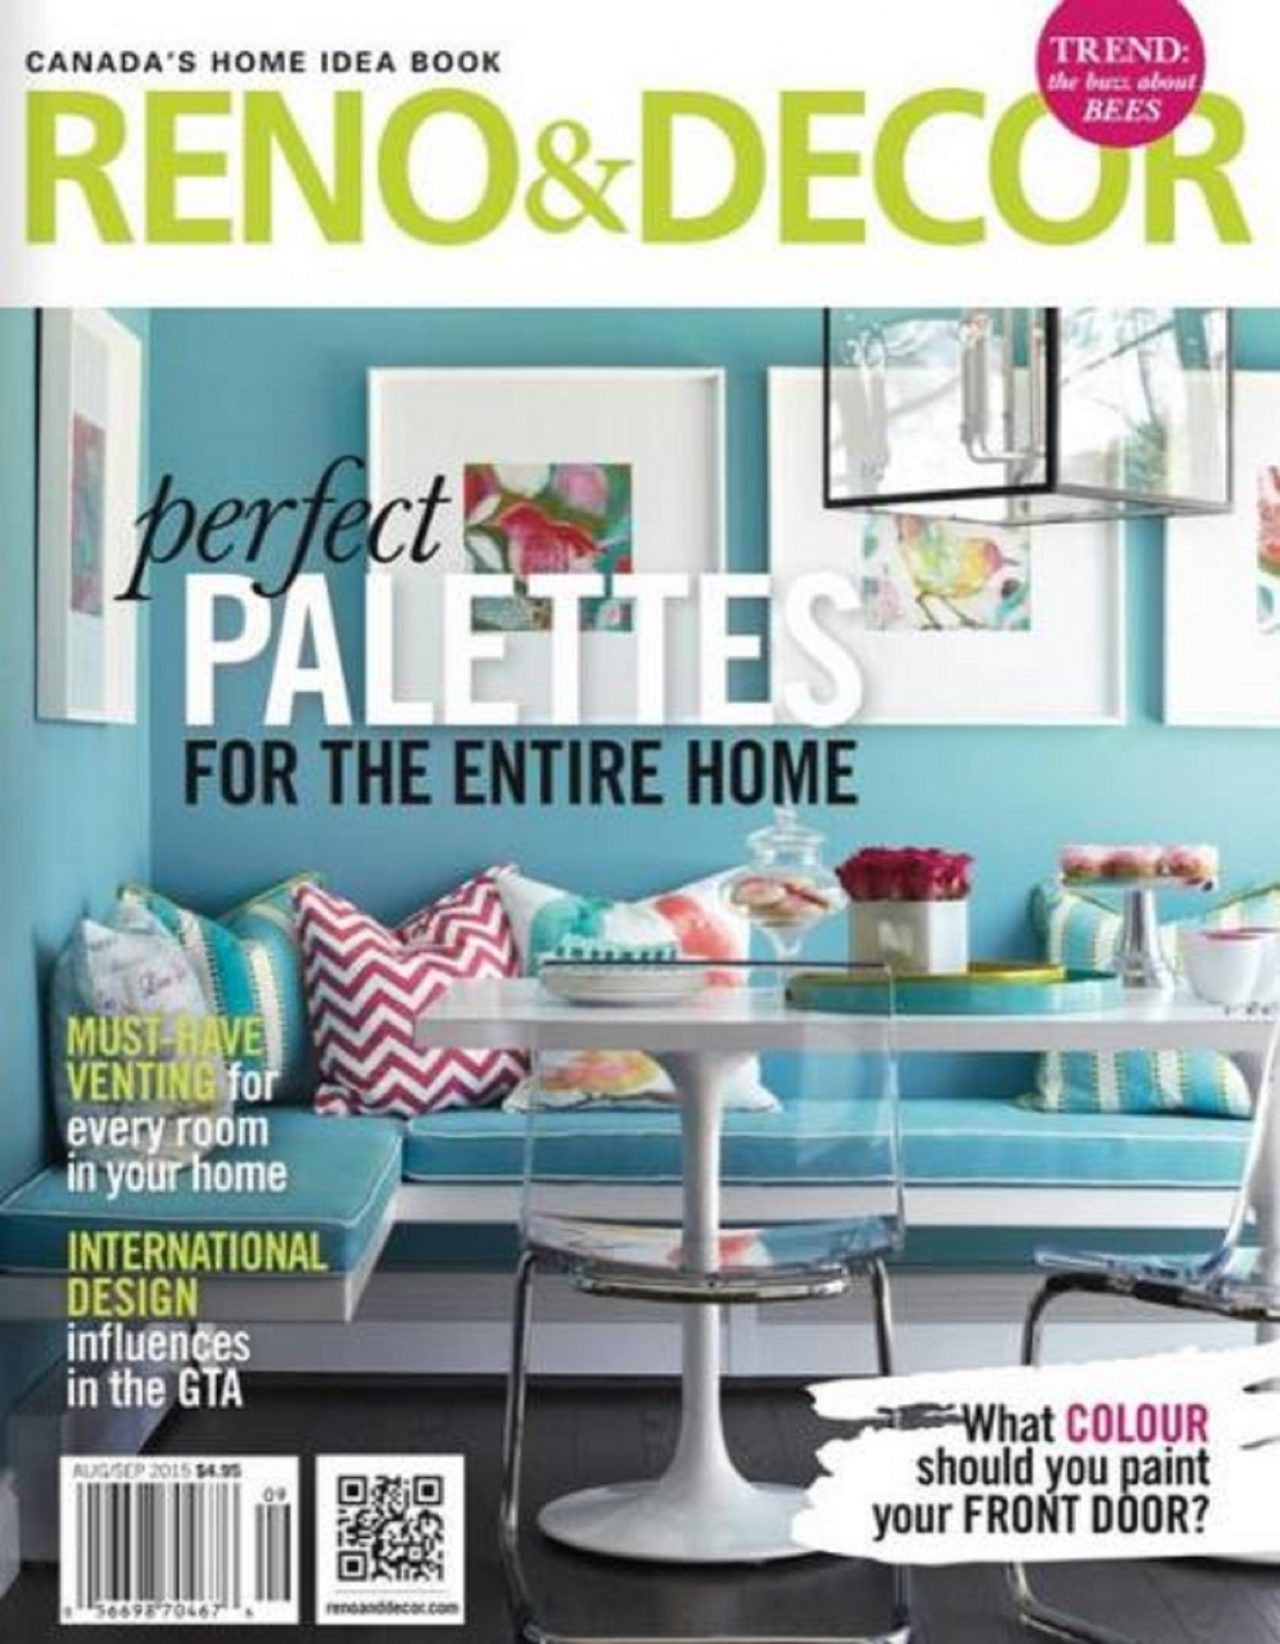 Jacklynn Little Interiors Published Article Reno and Decor magazine Aug/Sept 2015